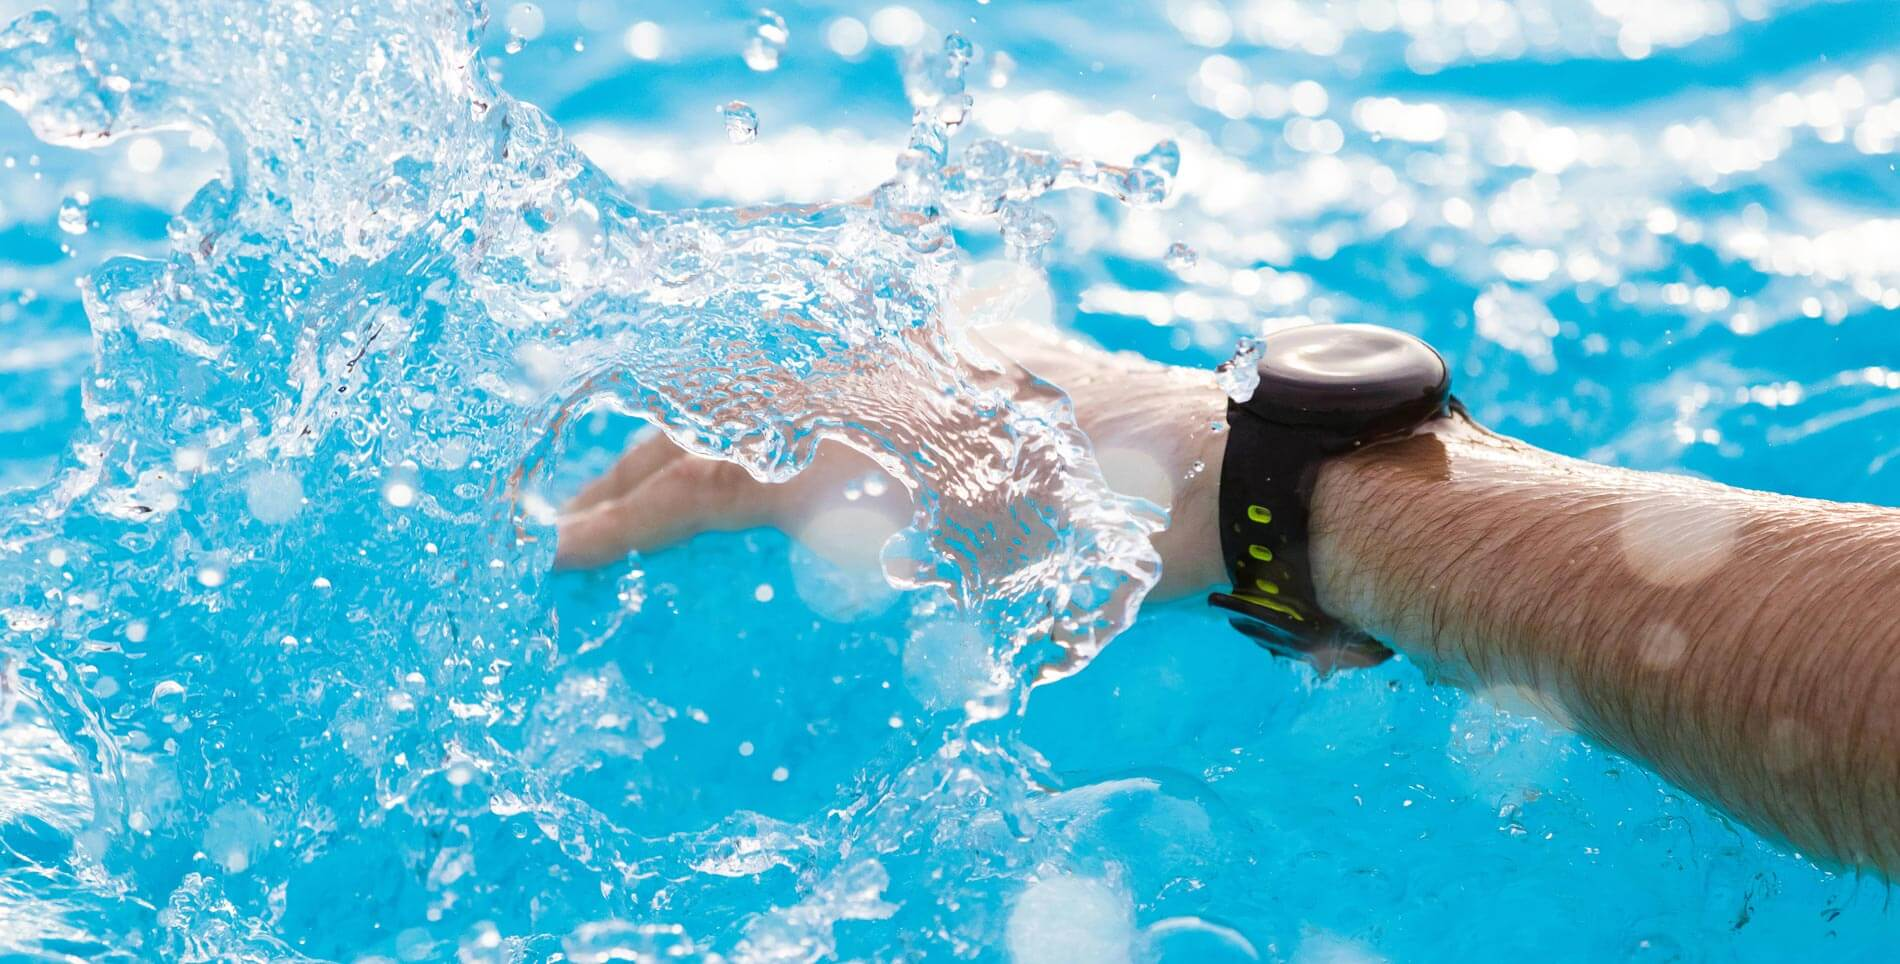 The different between Smartwatch with waterproof and water-resistant